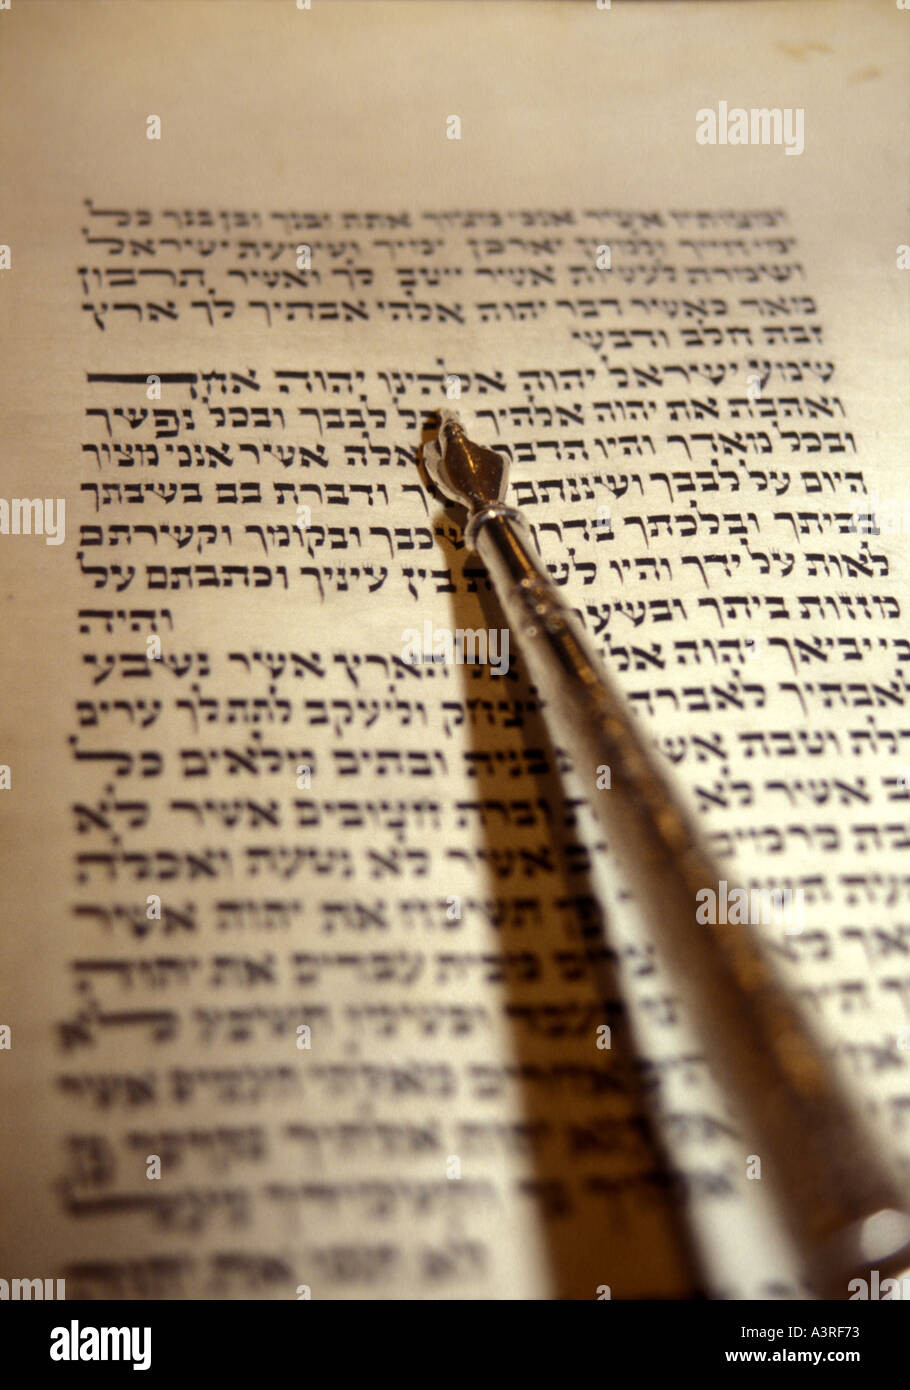 JUDAISM Hebrew script with yad or pointer - Stock Image